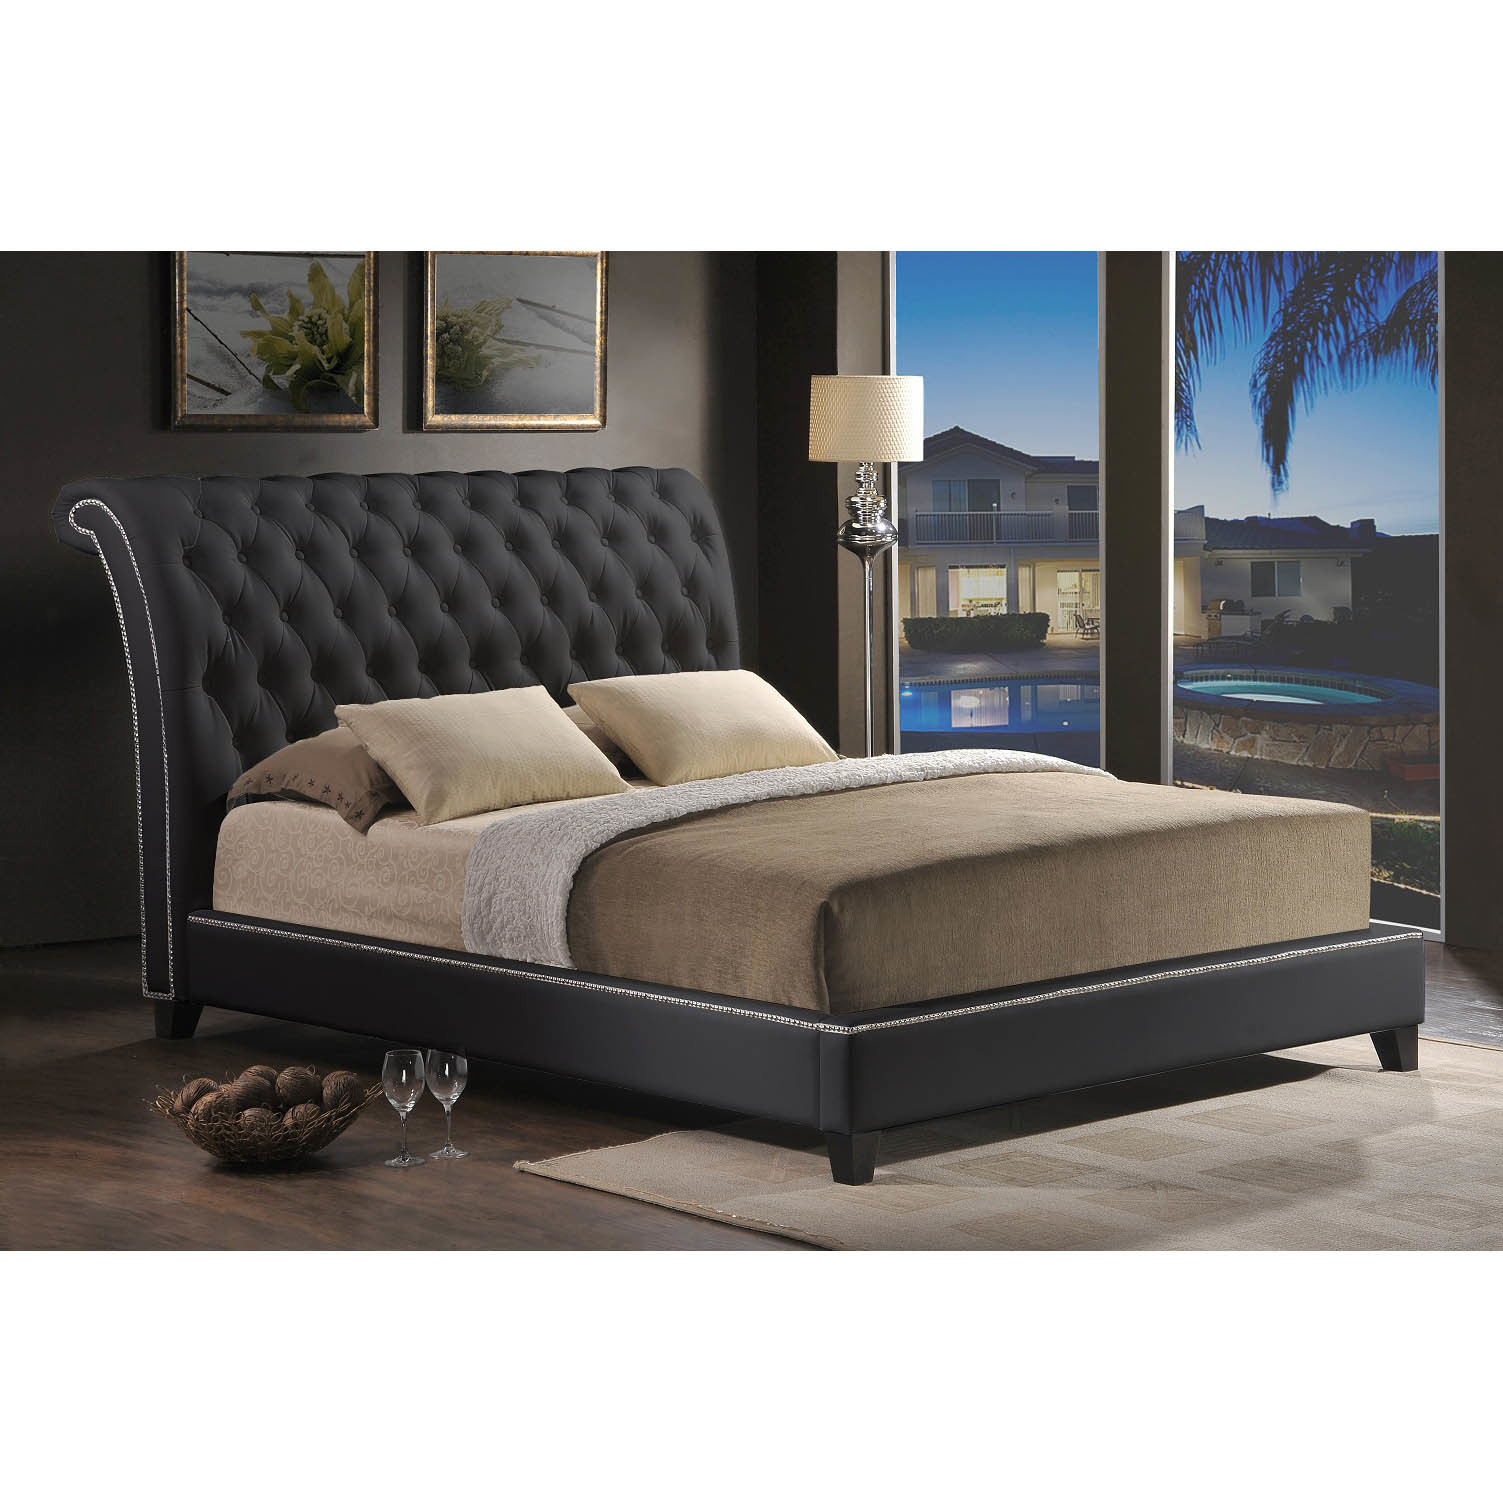 Baxton Studio Jazmin Tufted Modern Bed with Upholstered H...